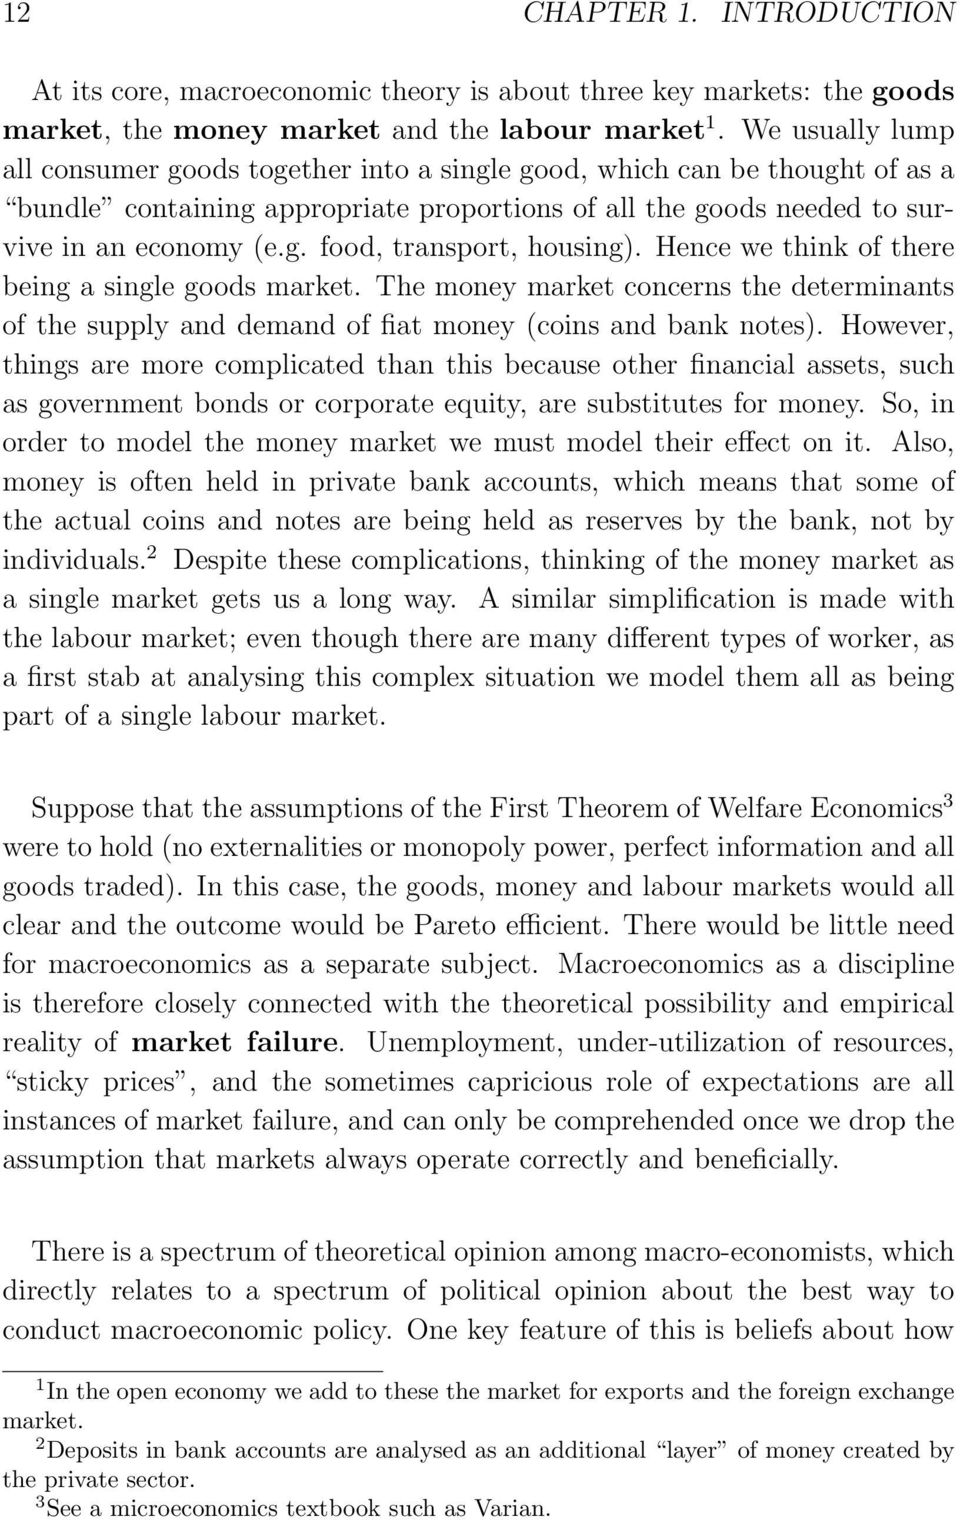 Hence we think of there being a single goods market. The money market concerns the determinants of the supply and demand of fiat money (coins and bank notes).